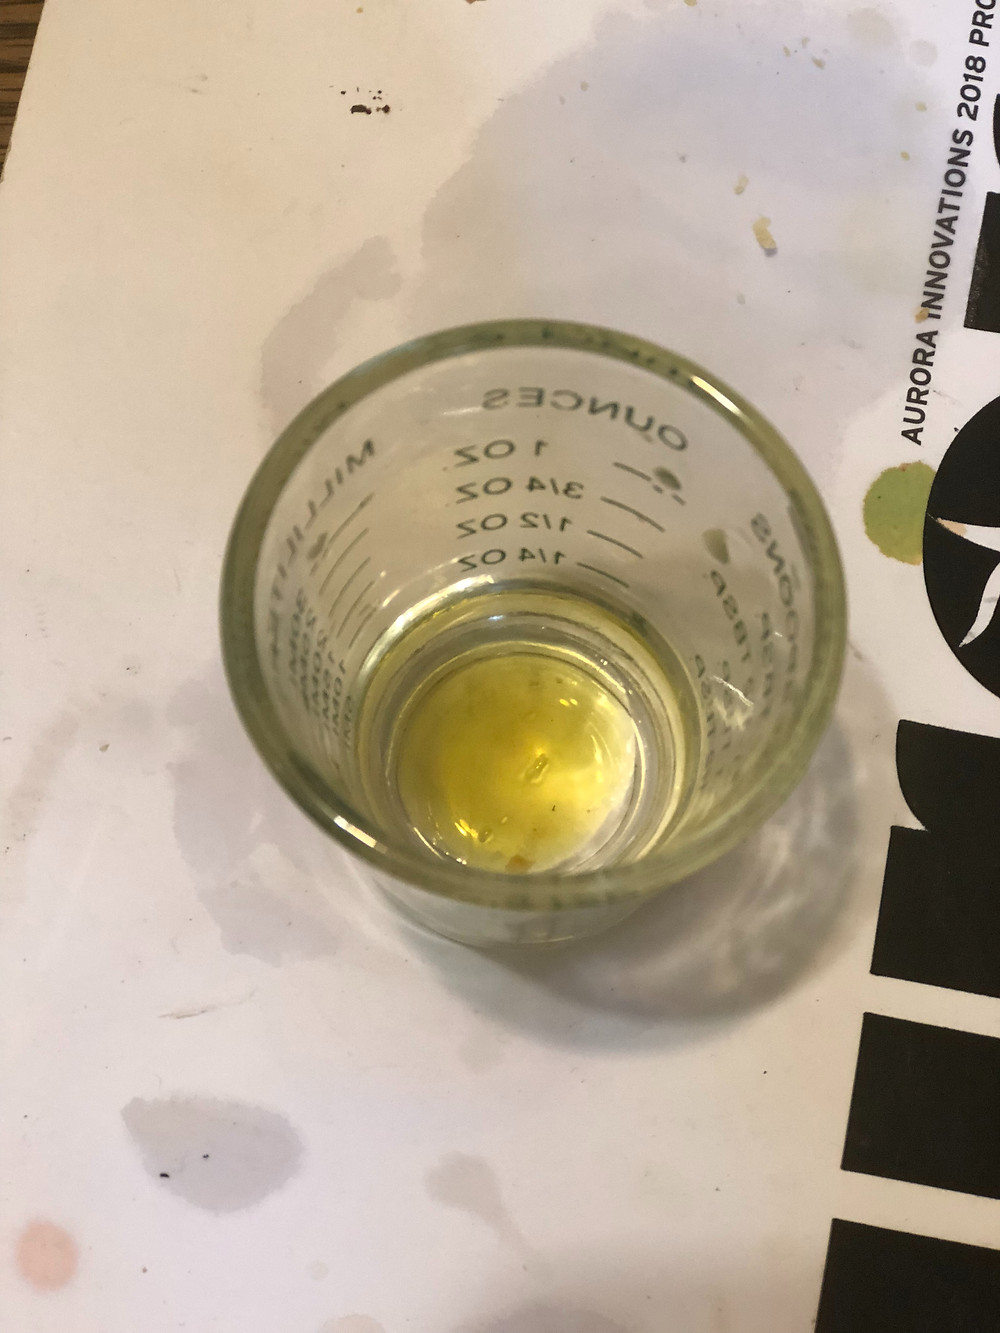 can you lower the ph of water using apple cider vinegar , do you have to lower the ph of water before you feed your cannabis